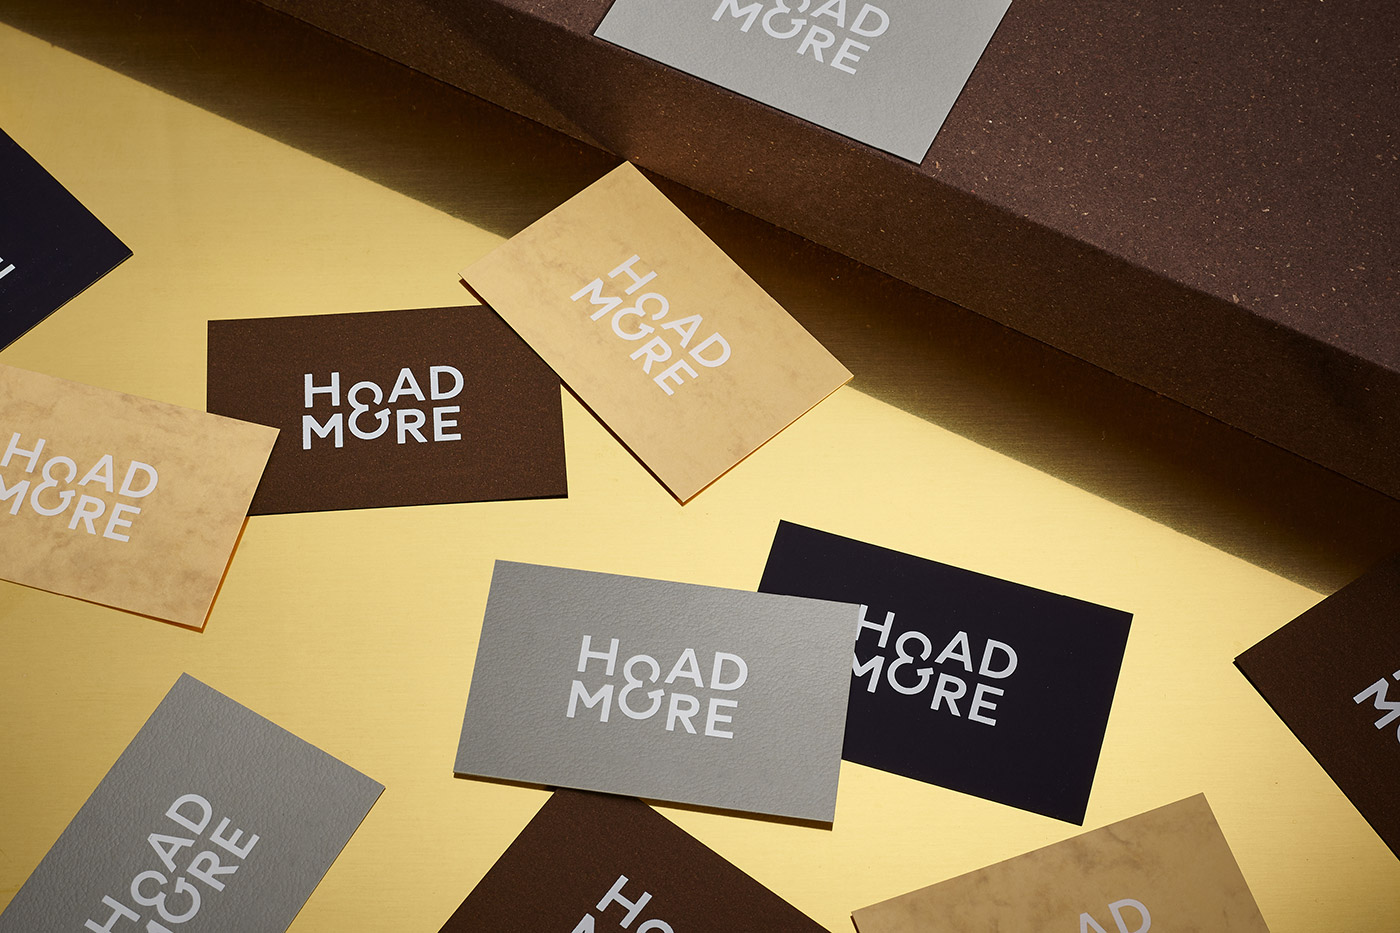 Hoad & More business card design